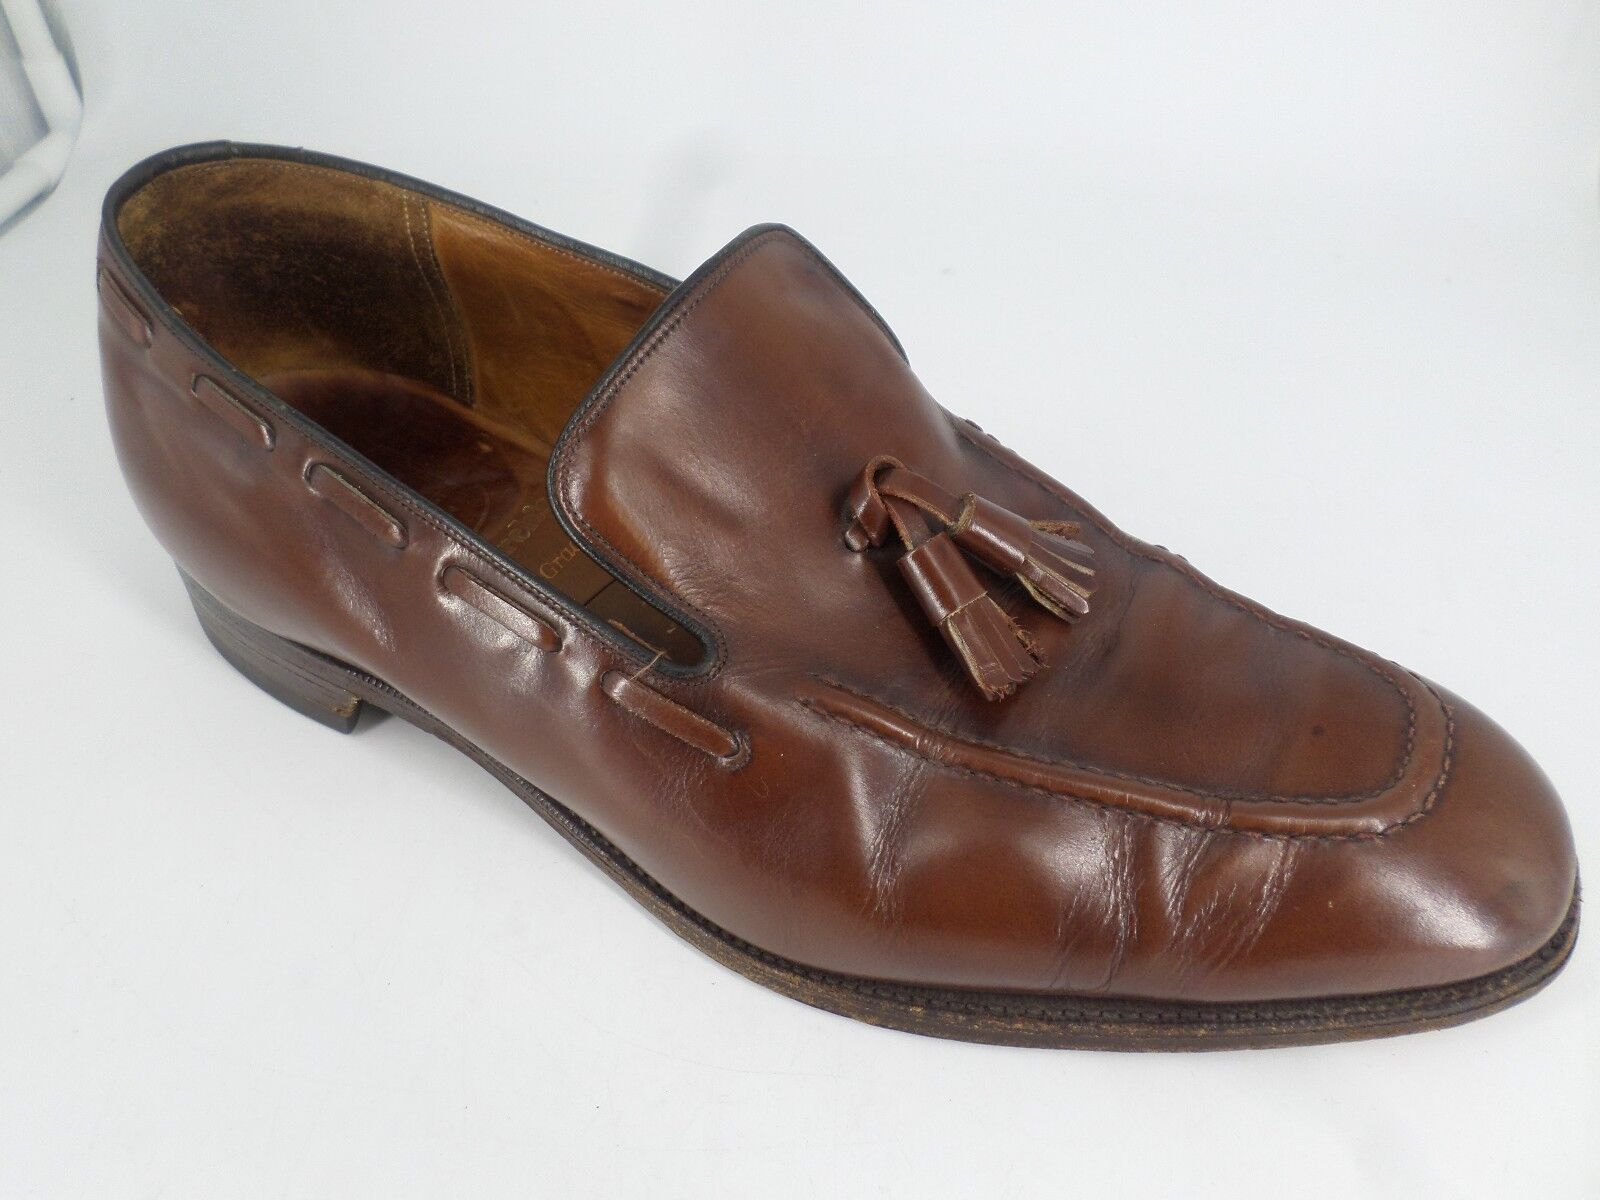 W.S.Foster & Son By Churchs Tassle Loafer Brown E Fit LN086 JJ 01